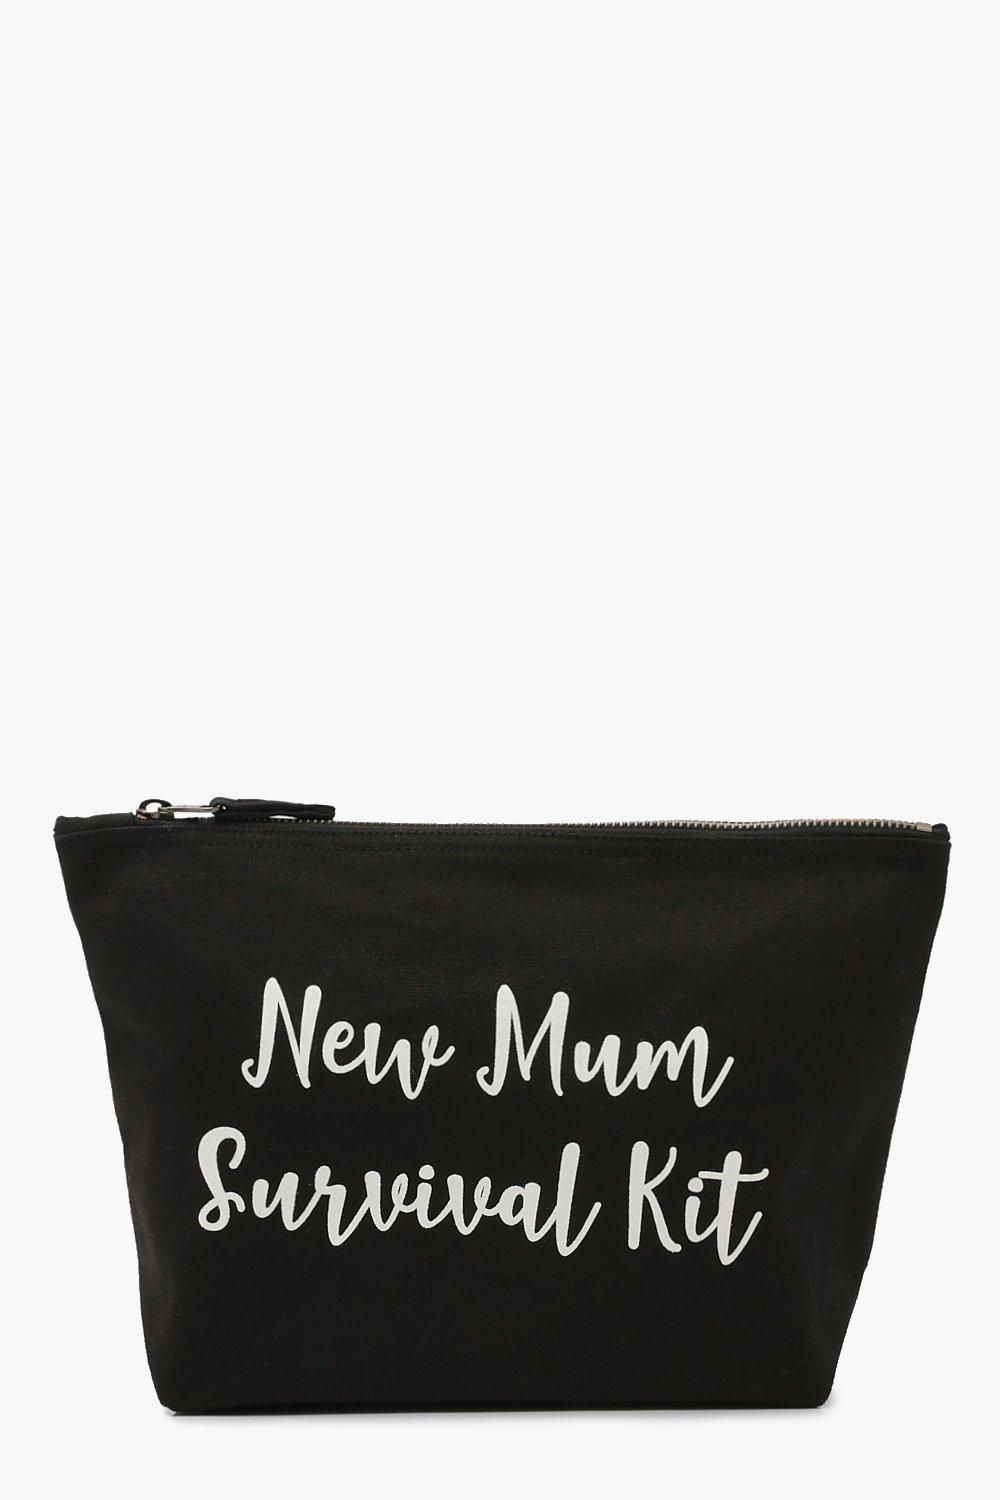 boohoo Womens Maternity New Mum Survival Kit Zip Pouch - Black - One Size, Black